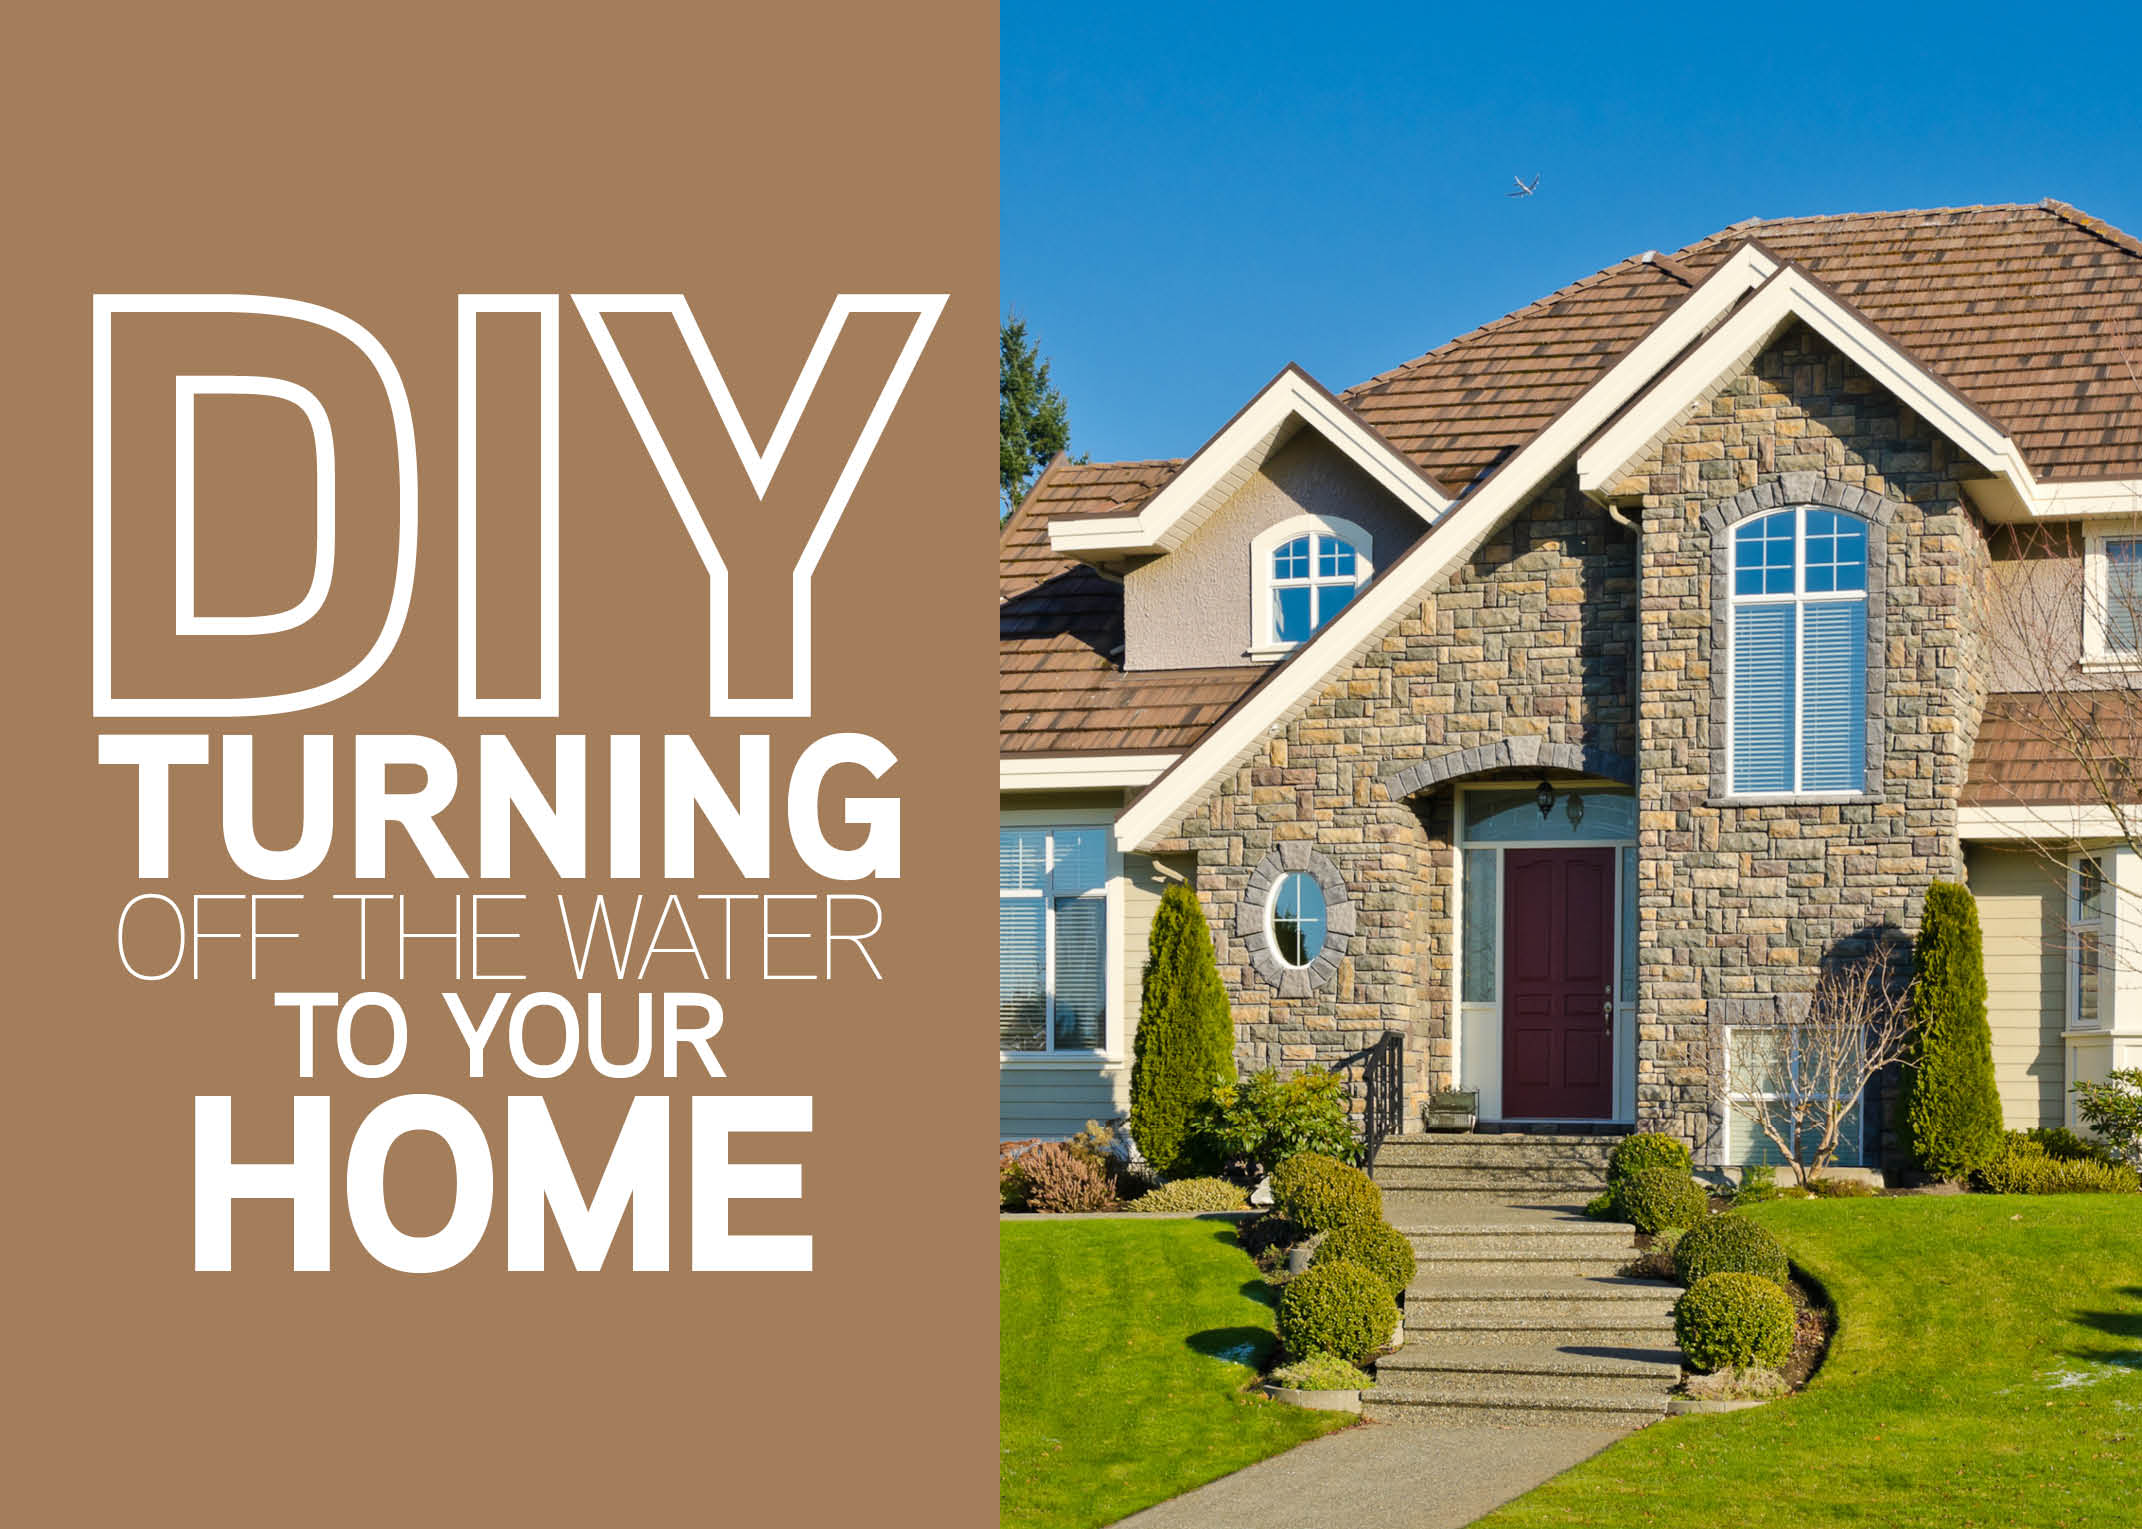 Diy Turning Off The Water To Your Home Mr Rooter Blog